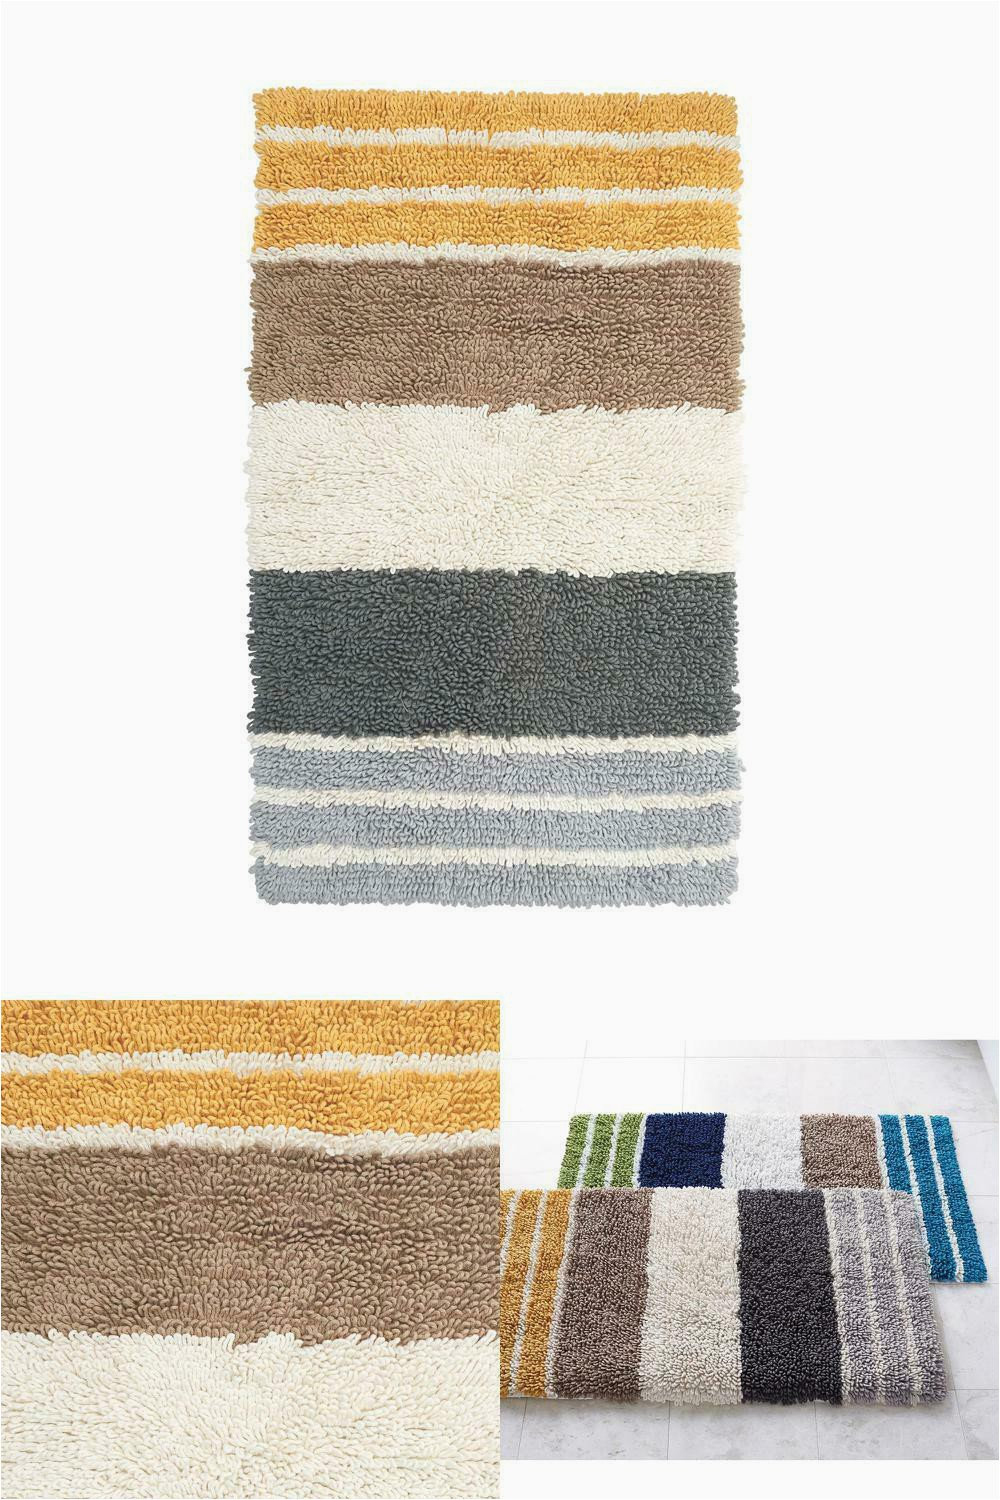 40 X 24 Bath Rug Chunky Loop Marigold Stripe 24 In X 40 In Cotton Bath Rug